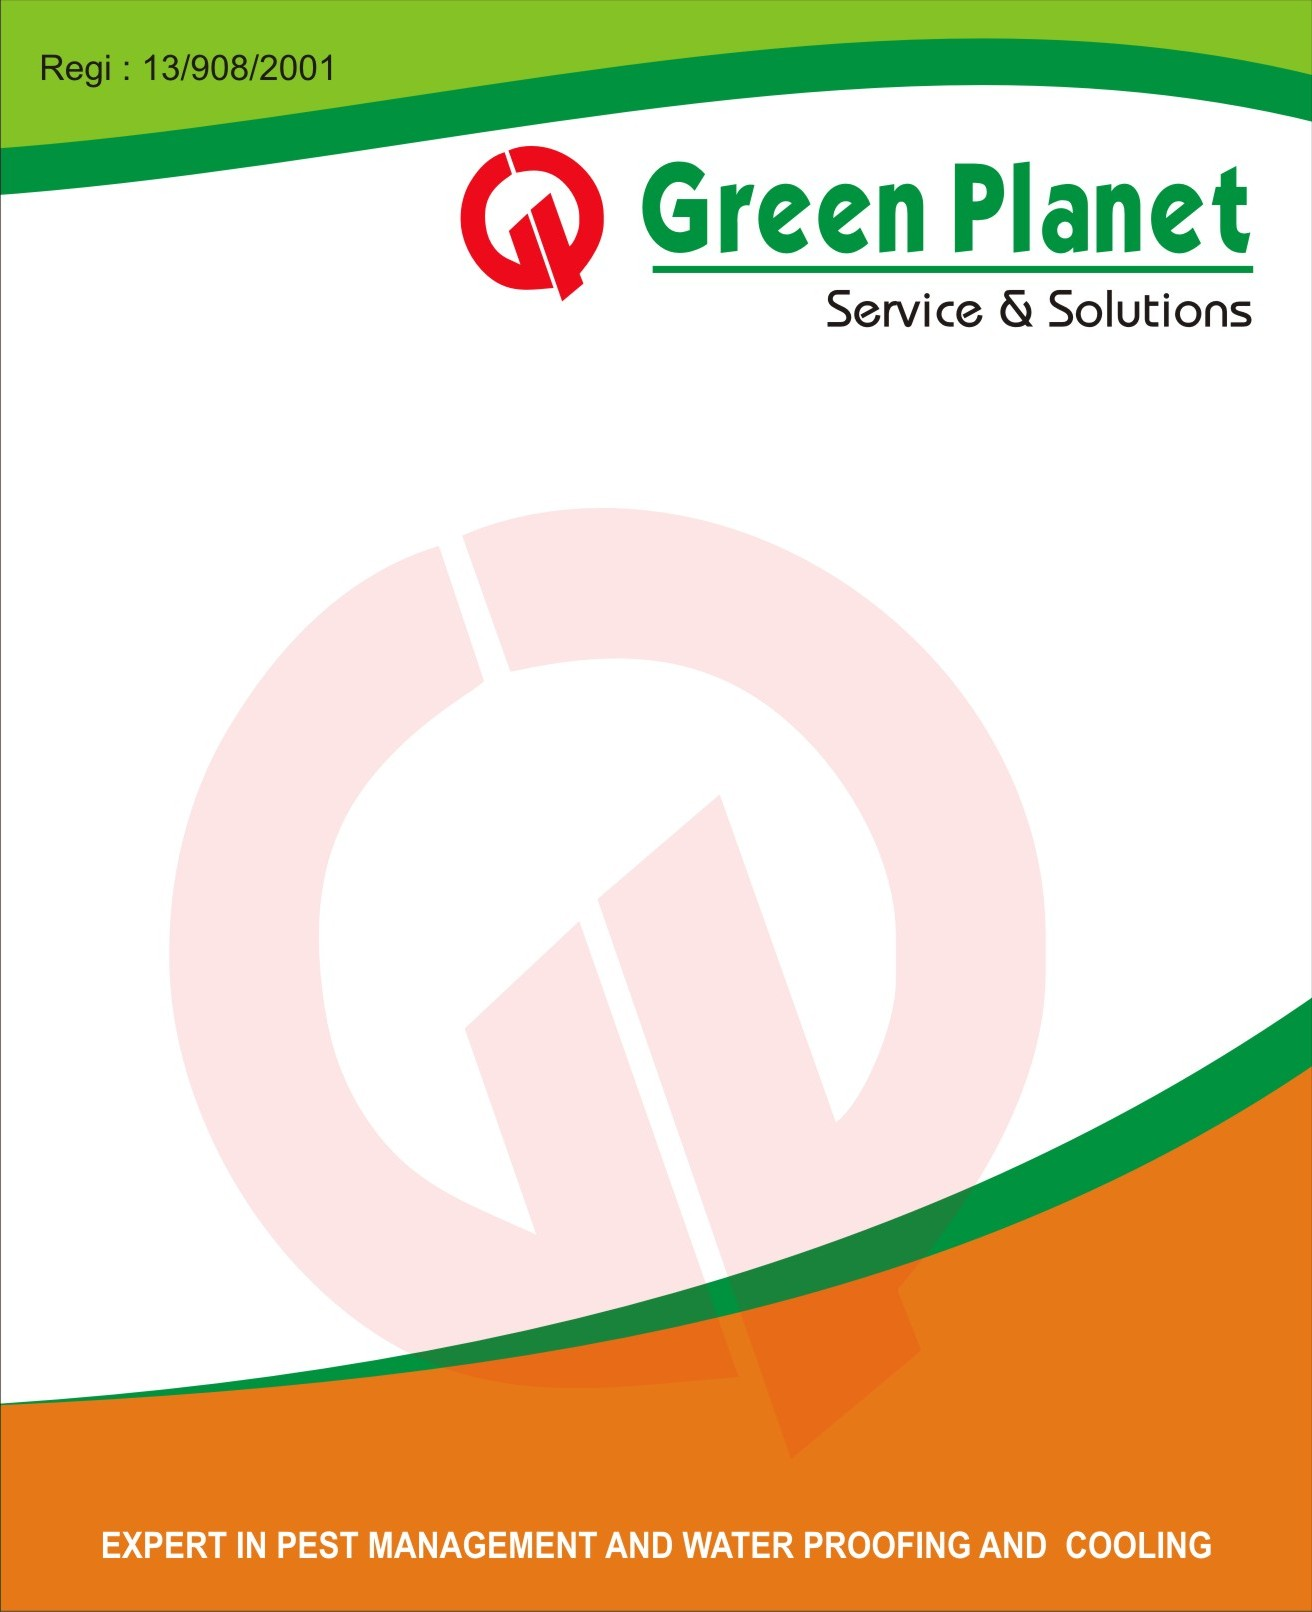 Green Planet Services & Solutions image